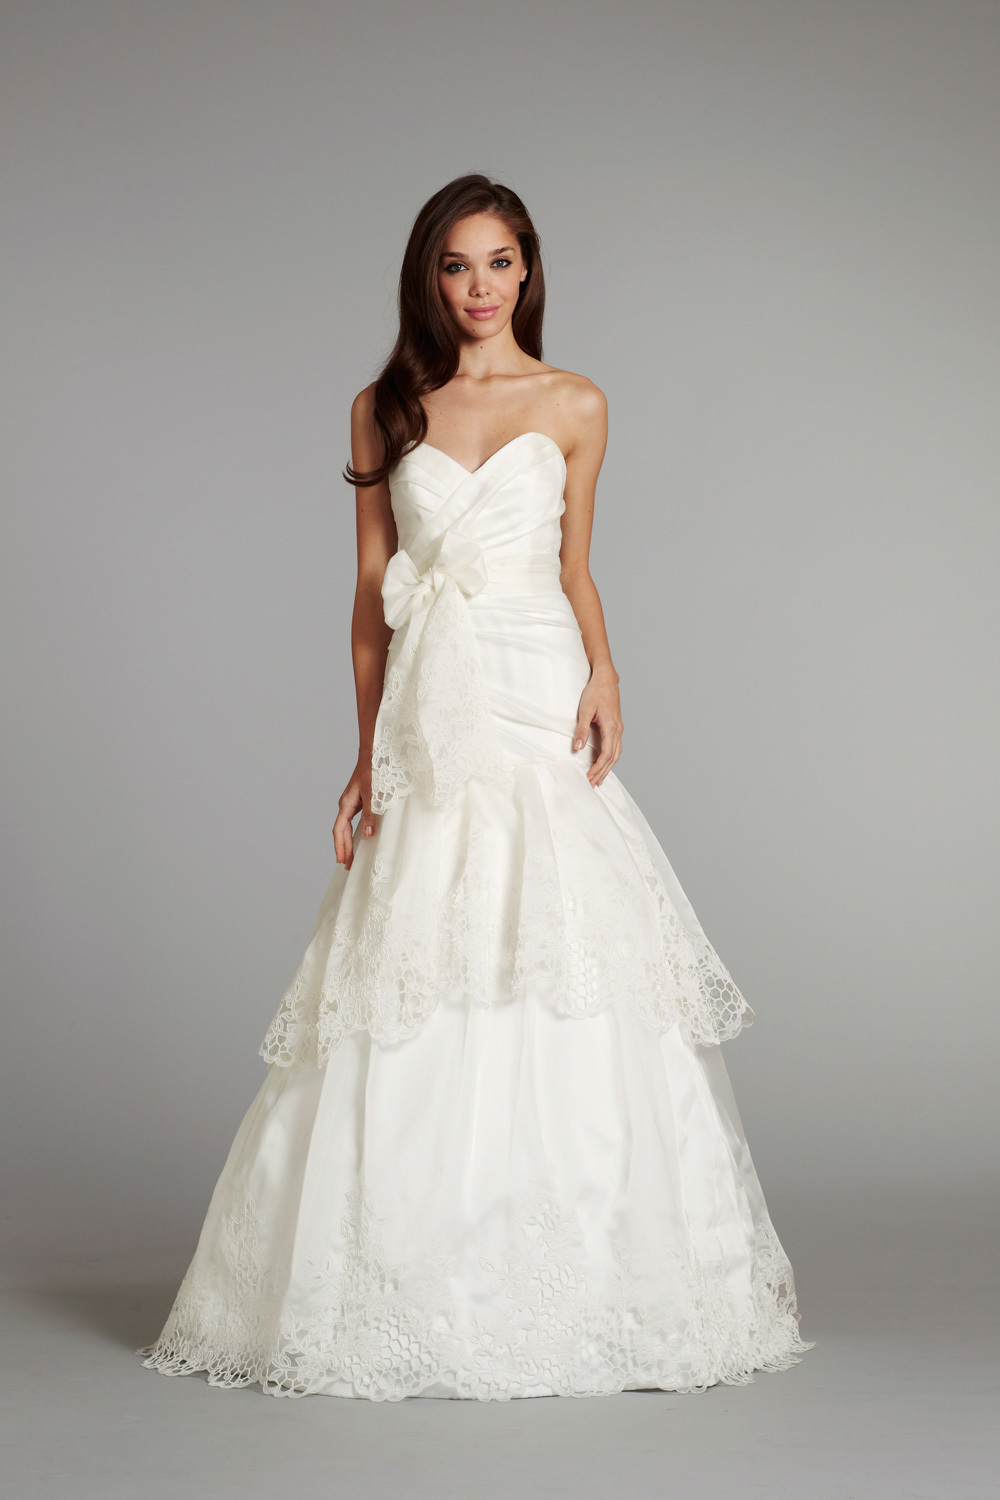 bridal gown wedding dress jlm hayley paige fall 2012 savannah front